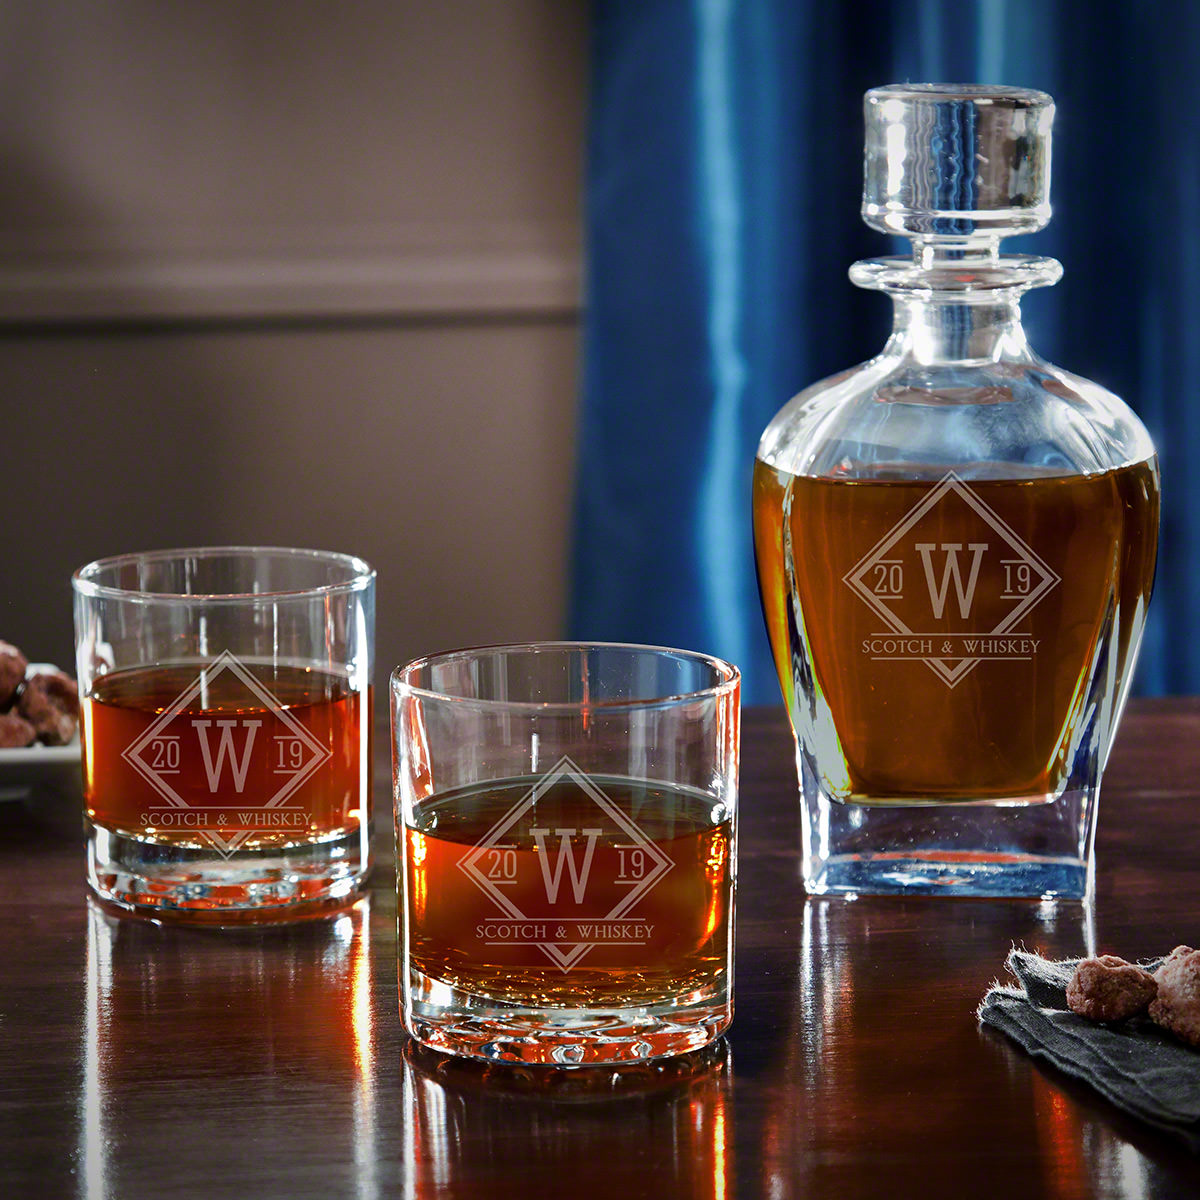 Drake-Engraved-Draper-Whiskey-Decanter-Set